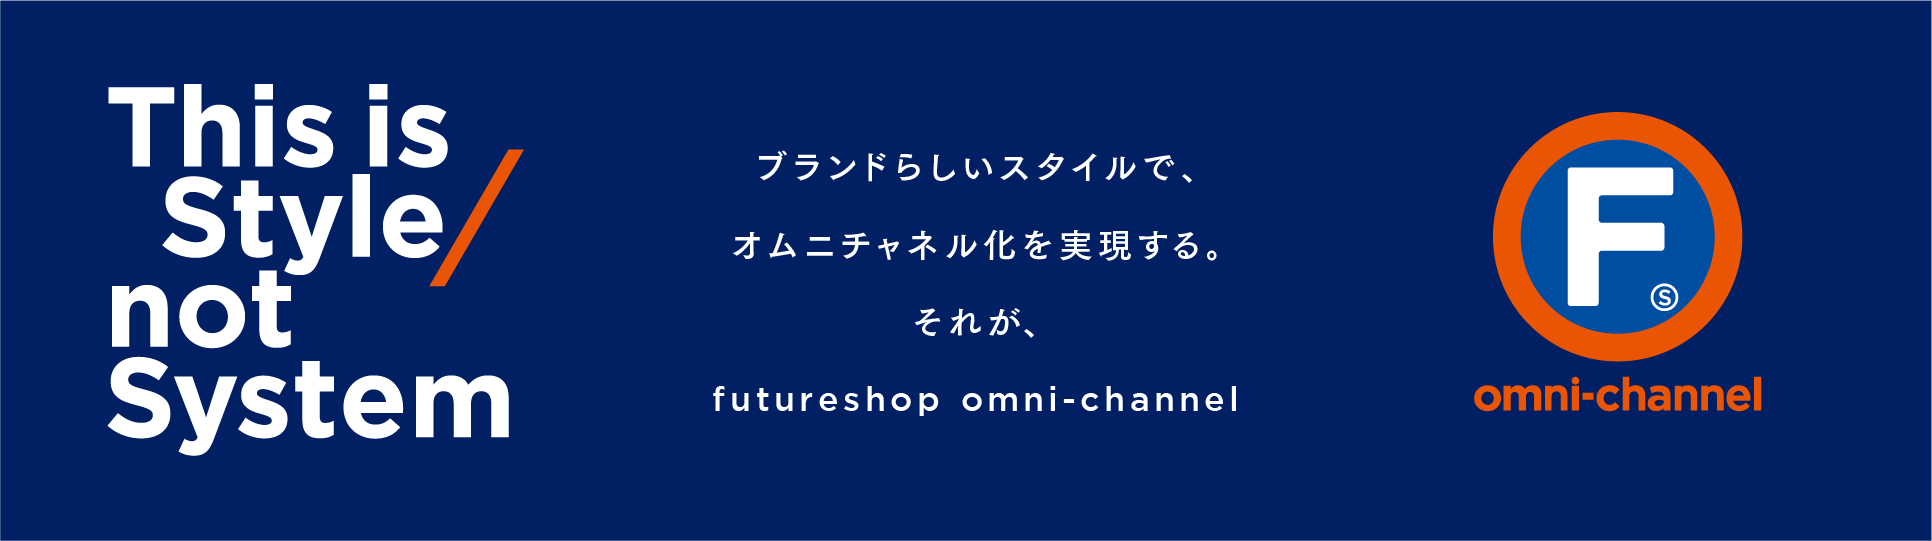 futureshop omni-channelバナー